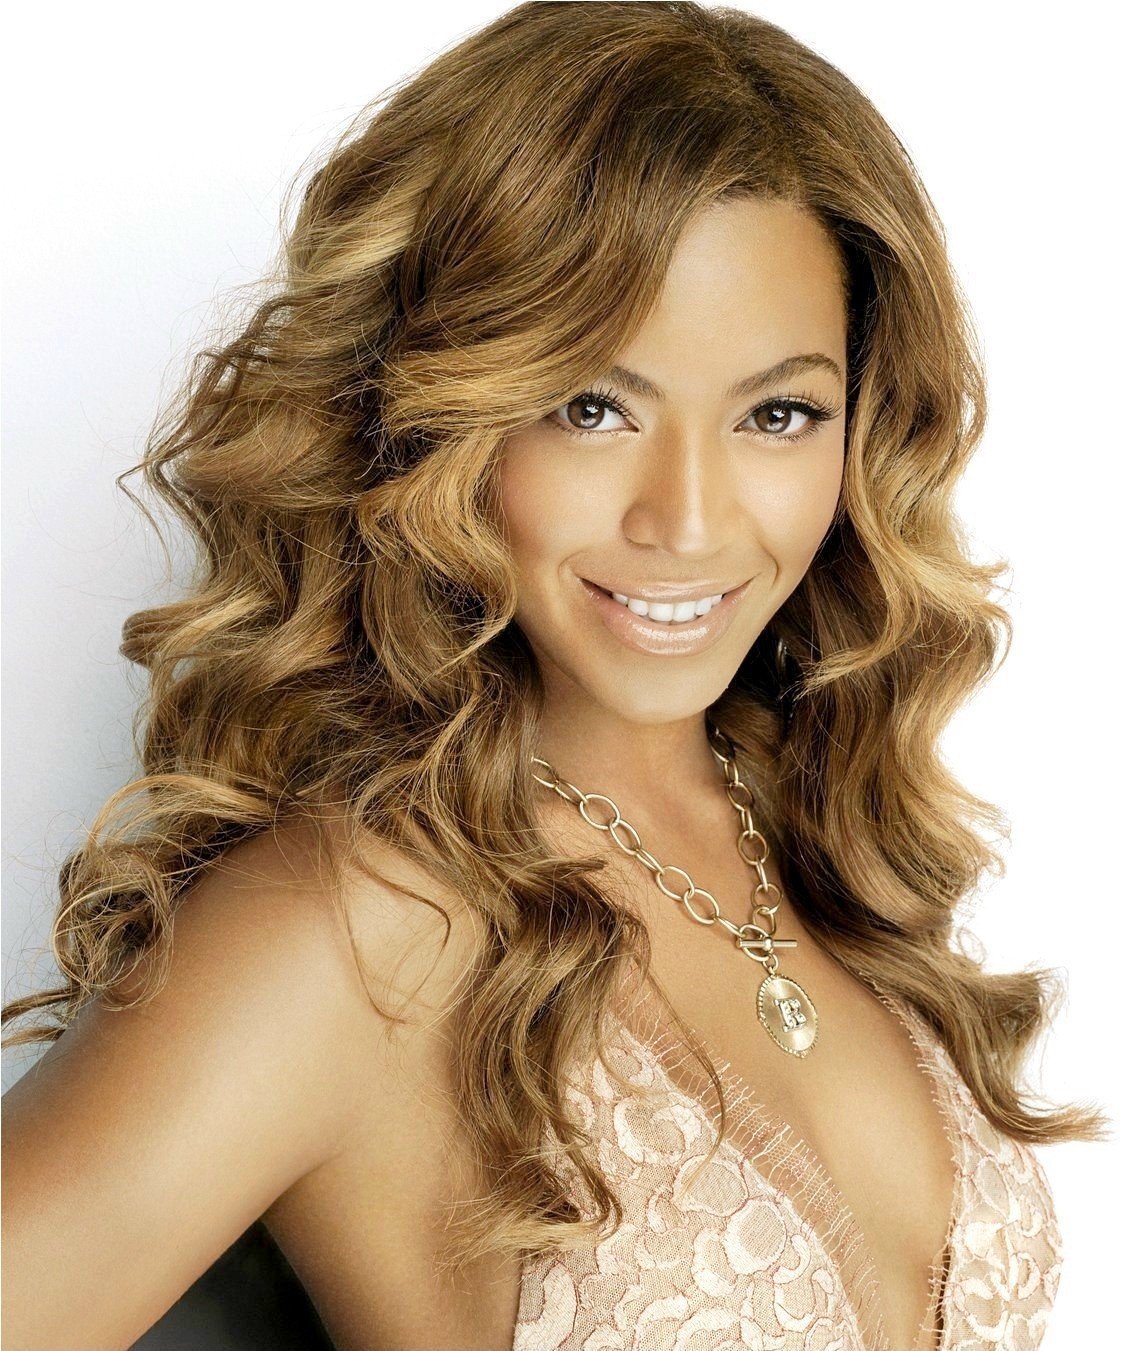 Lovely Beyonce Photo Beyonce Photo 17510780 Fanpop